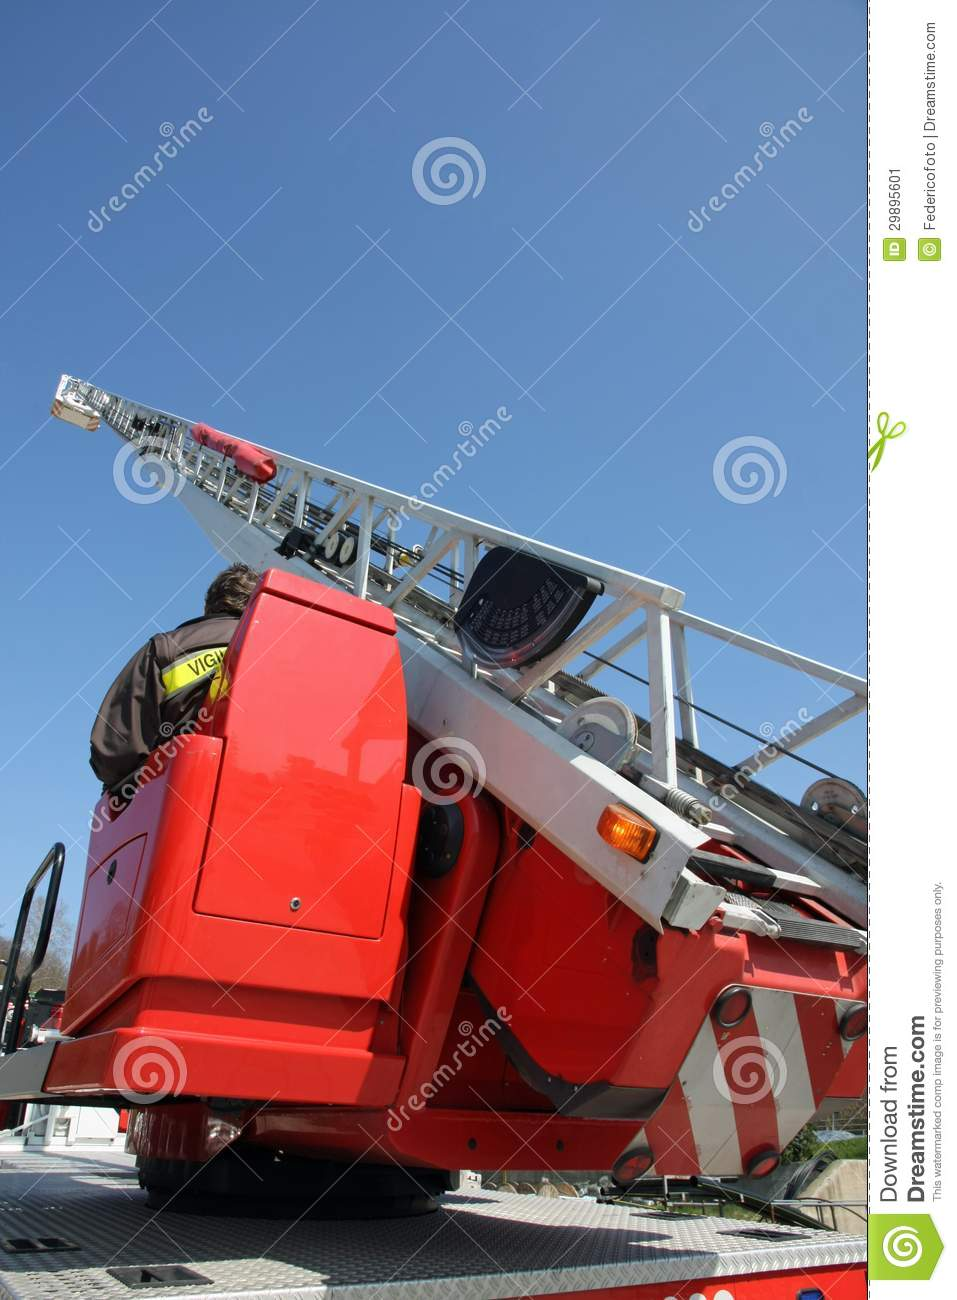 Platform Of A Fire Truck During A Practice Session In The Fireho Stock